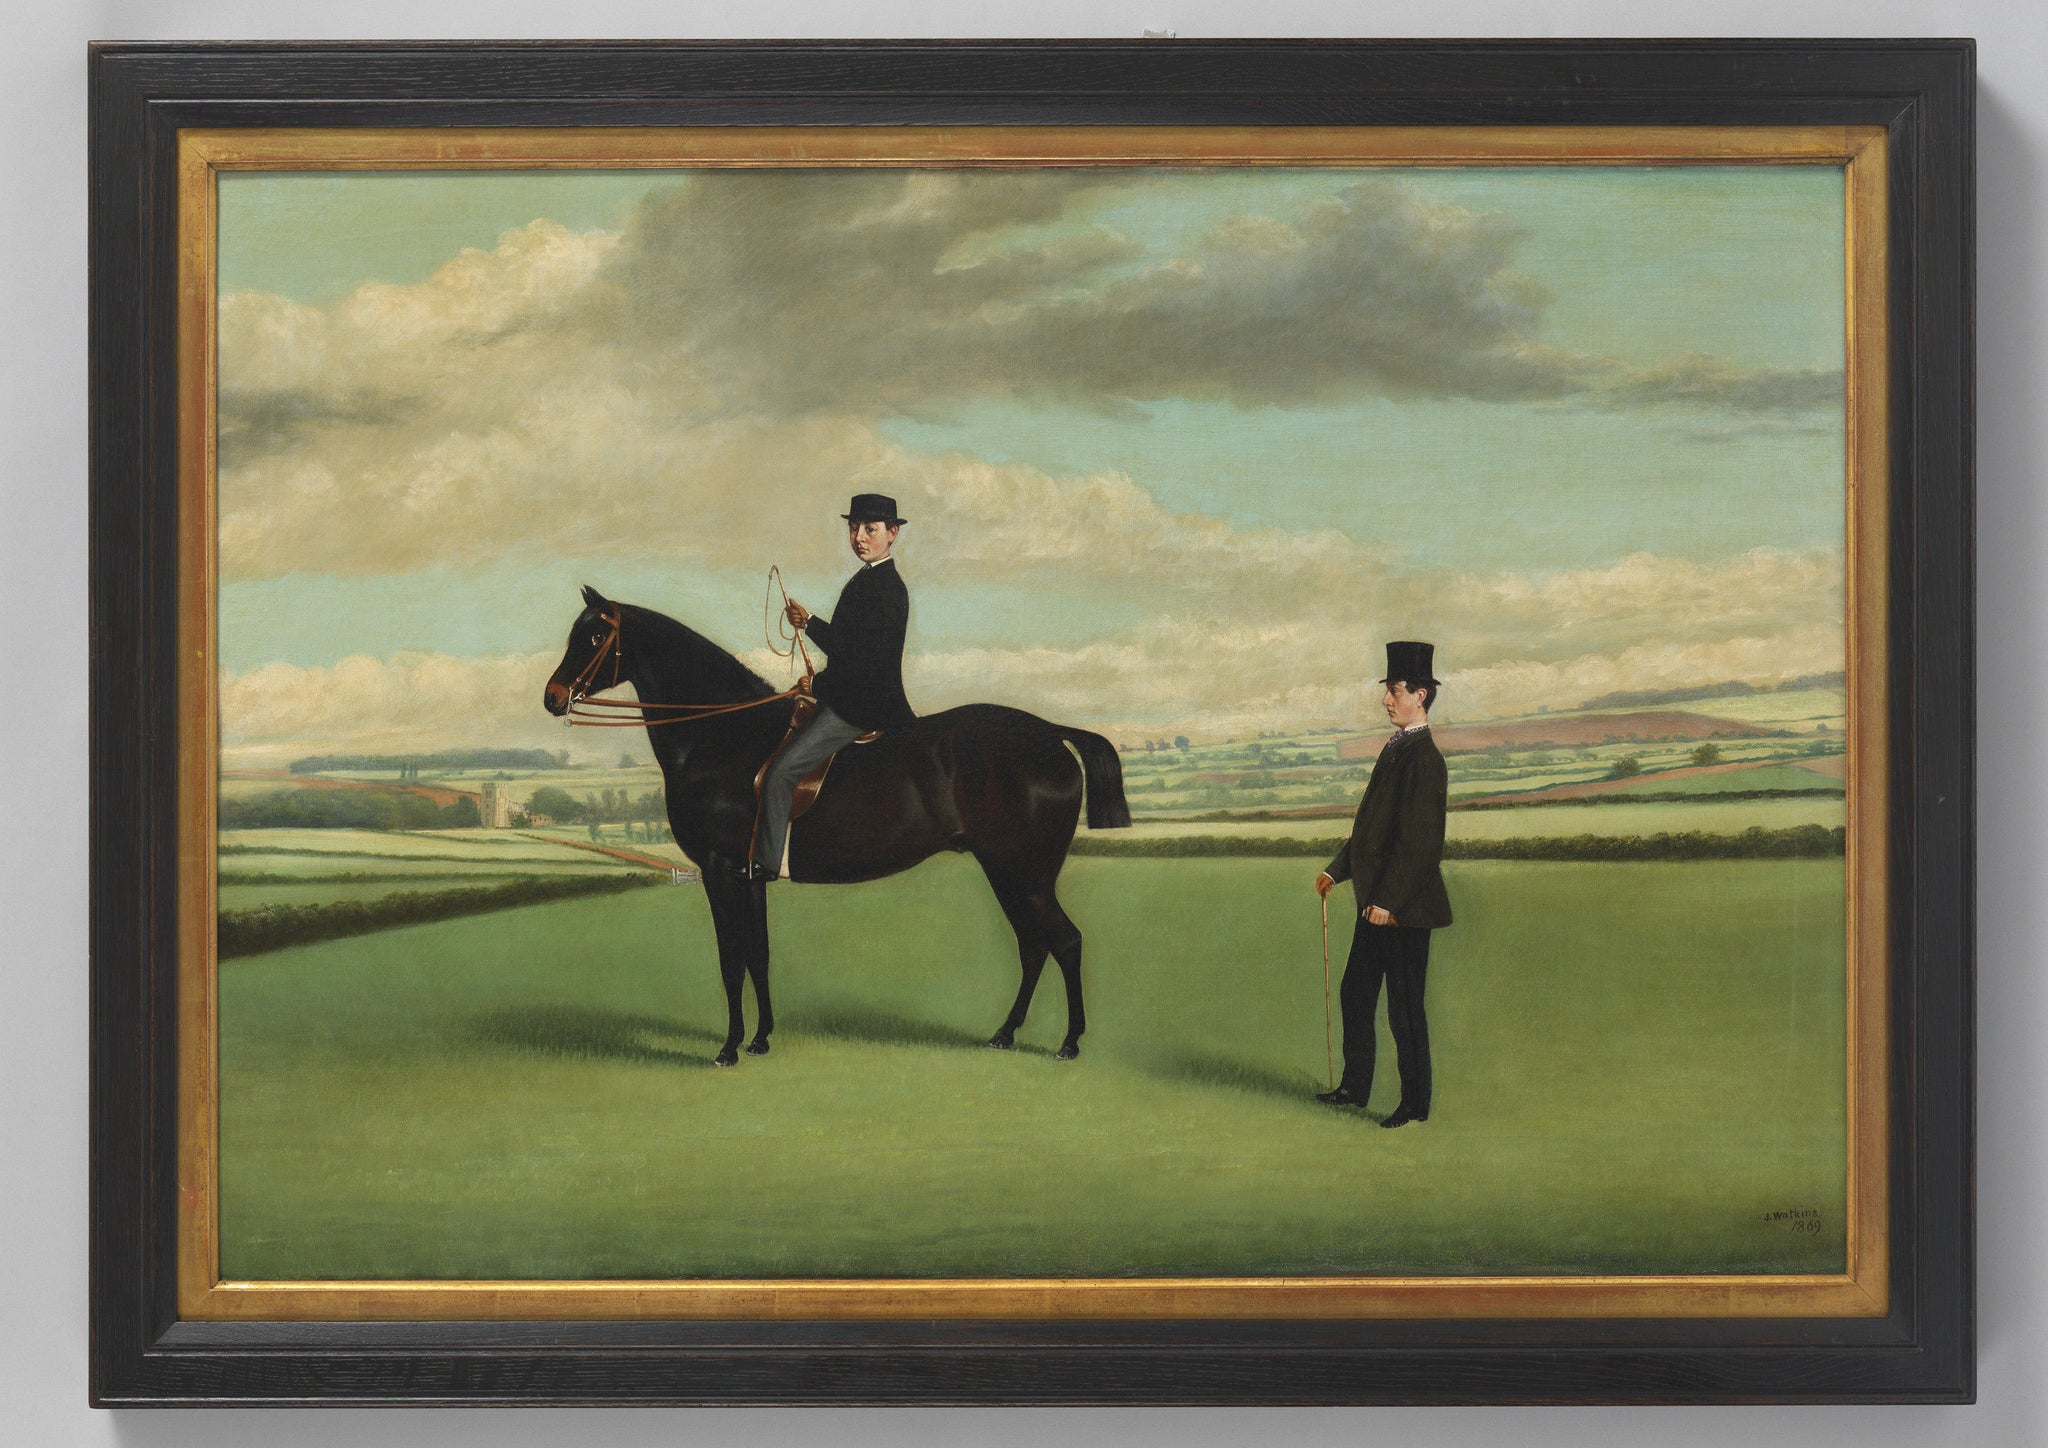 J Watkins, 'Two Men and A Horse'